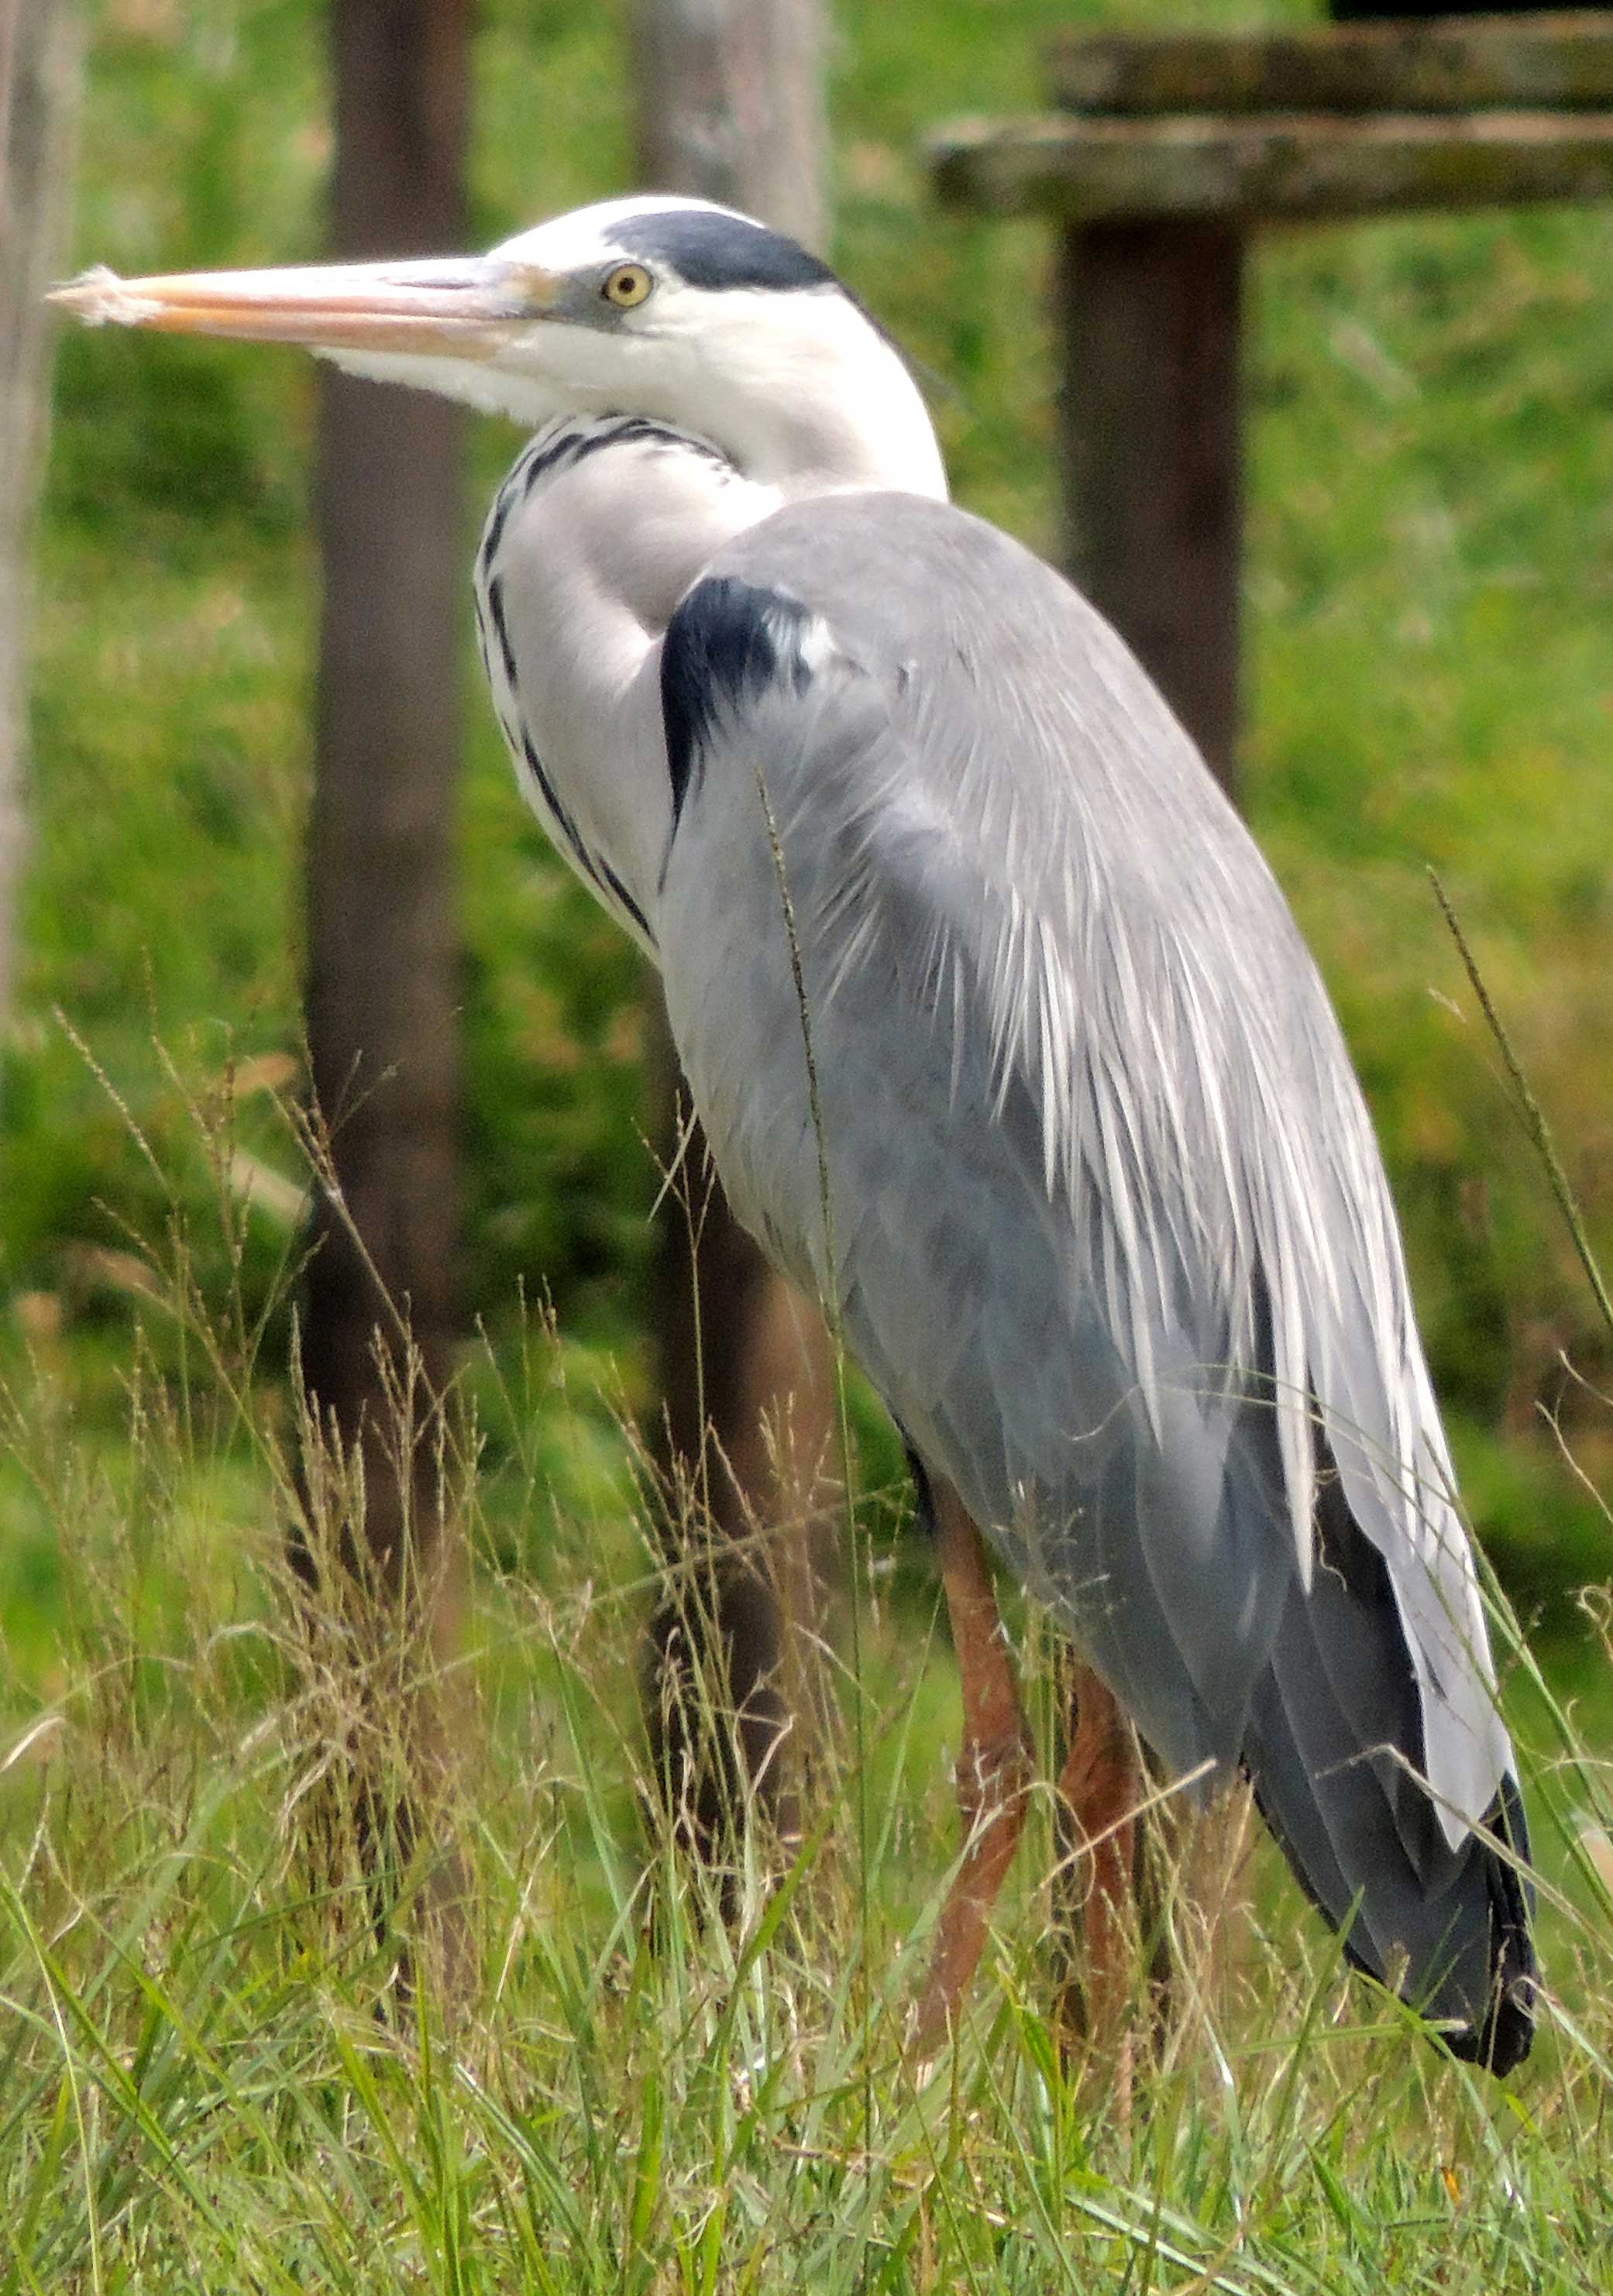 Gray Heron, Ardea cinerea, photo © by Michael Plagens